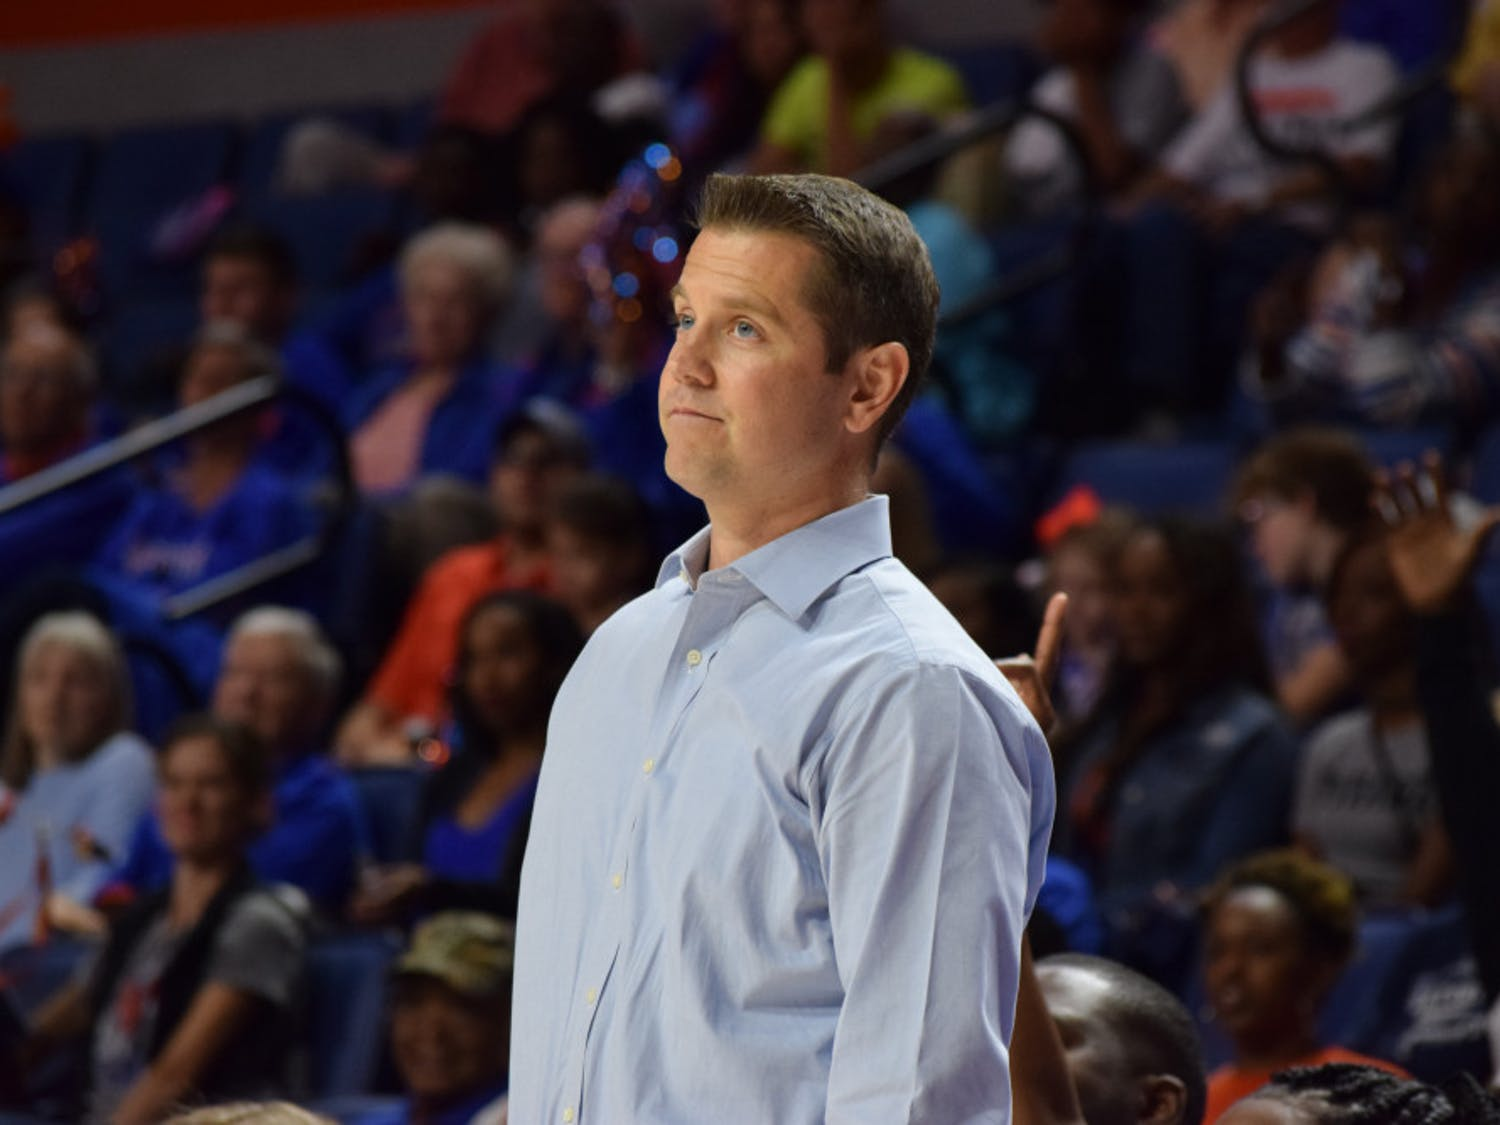 The inexperience and lack of depth in Florida's 84-54 loss to Florida State in the O'Connell Center showed just how much farther coach Cameron Newbauer has to push his Gators team.